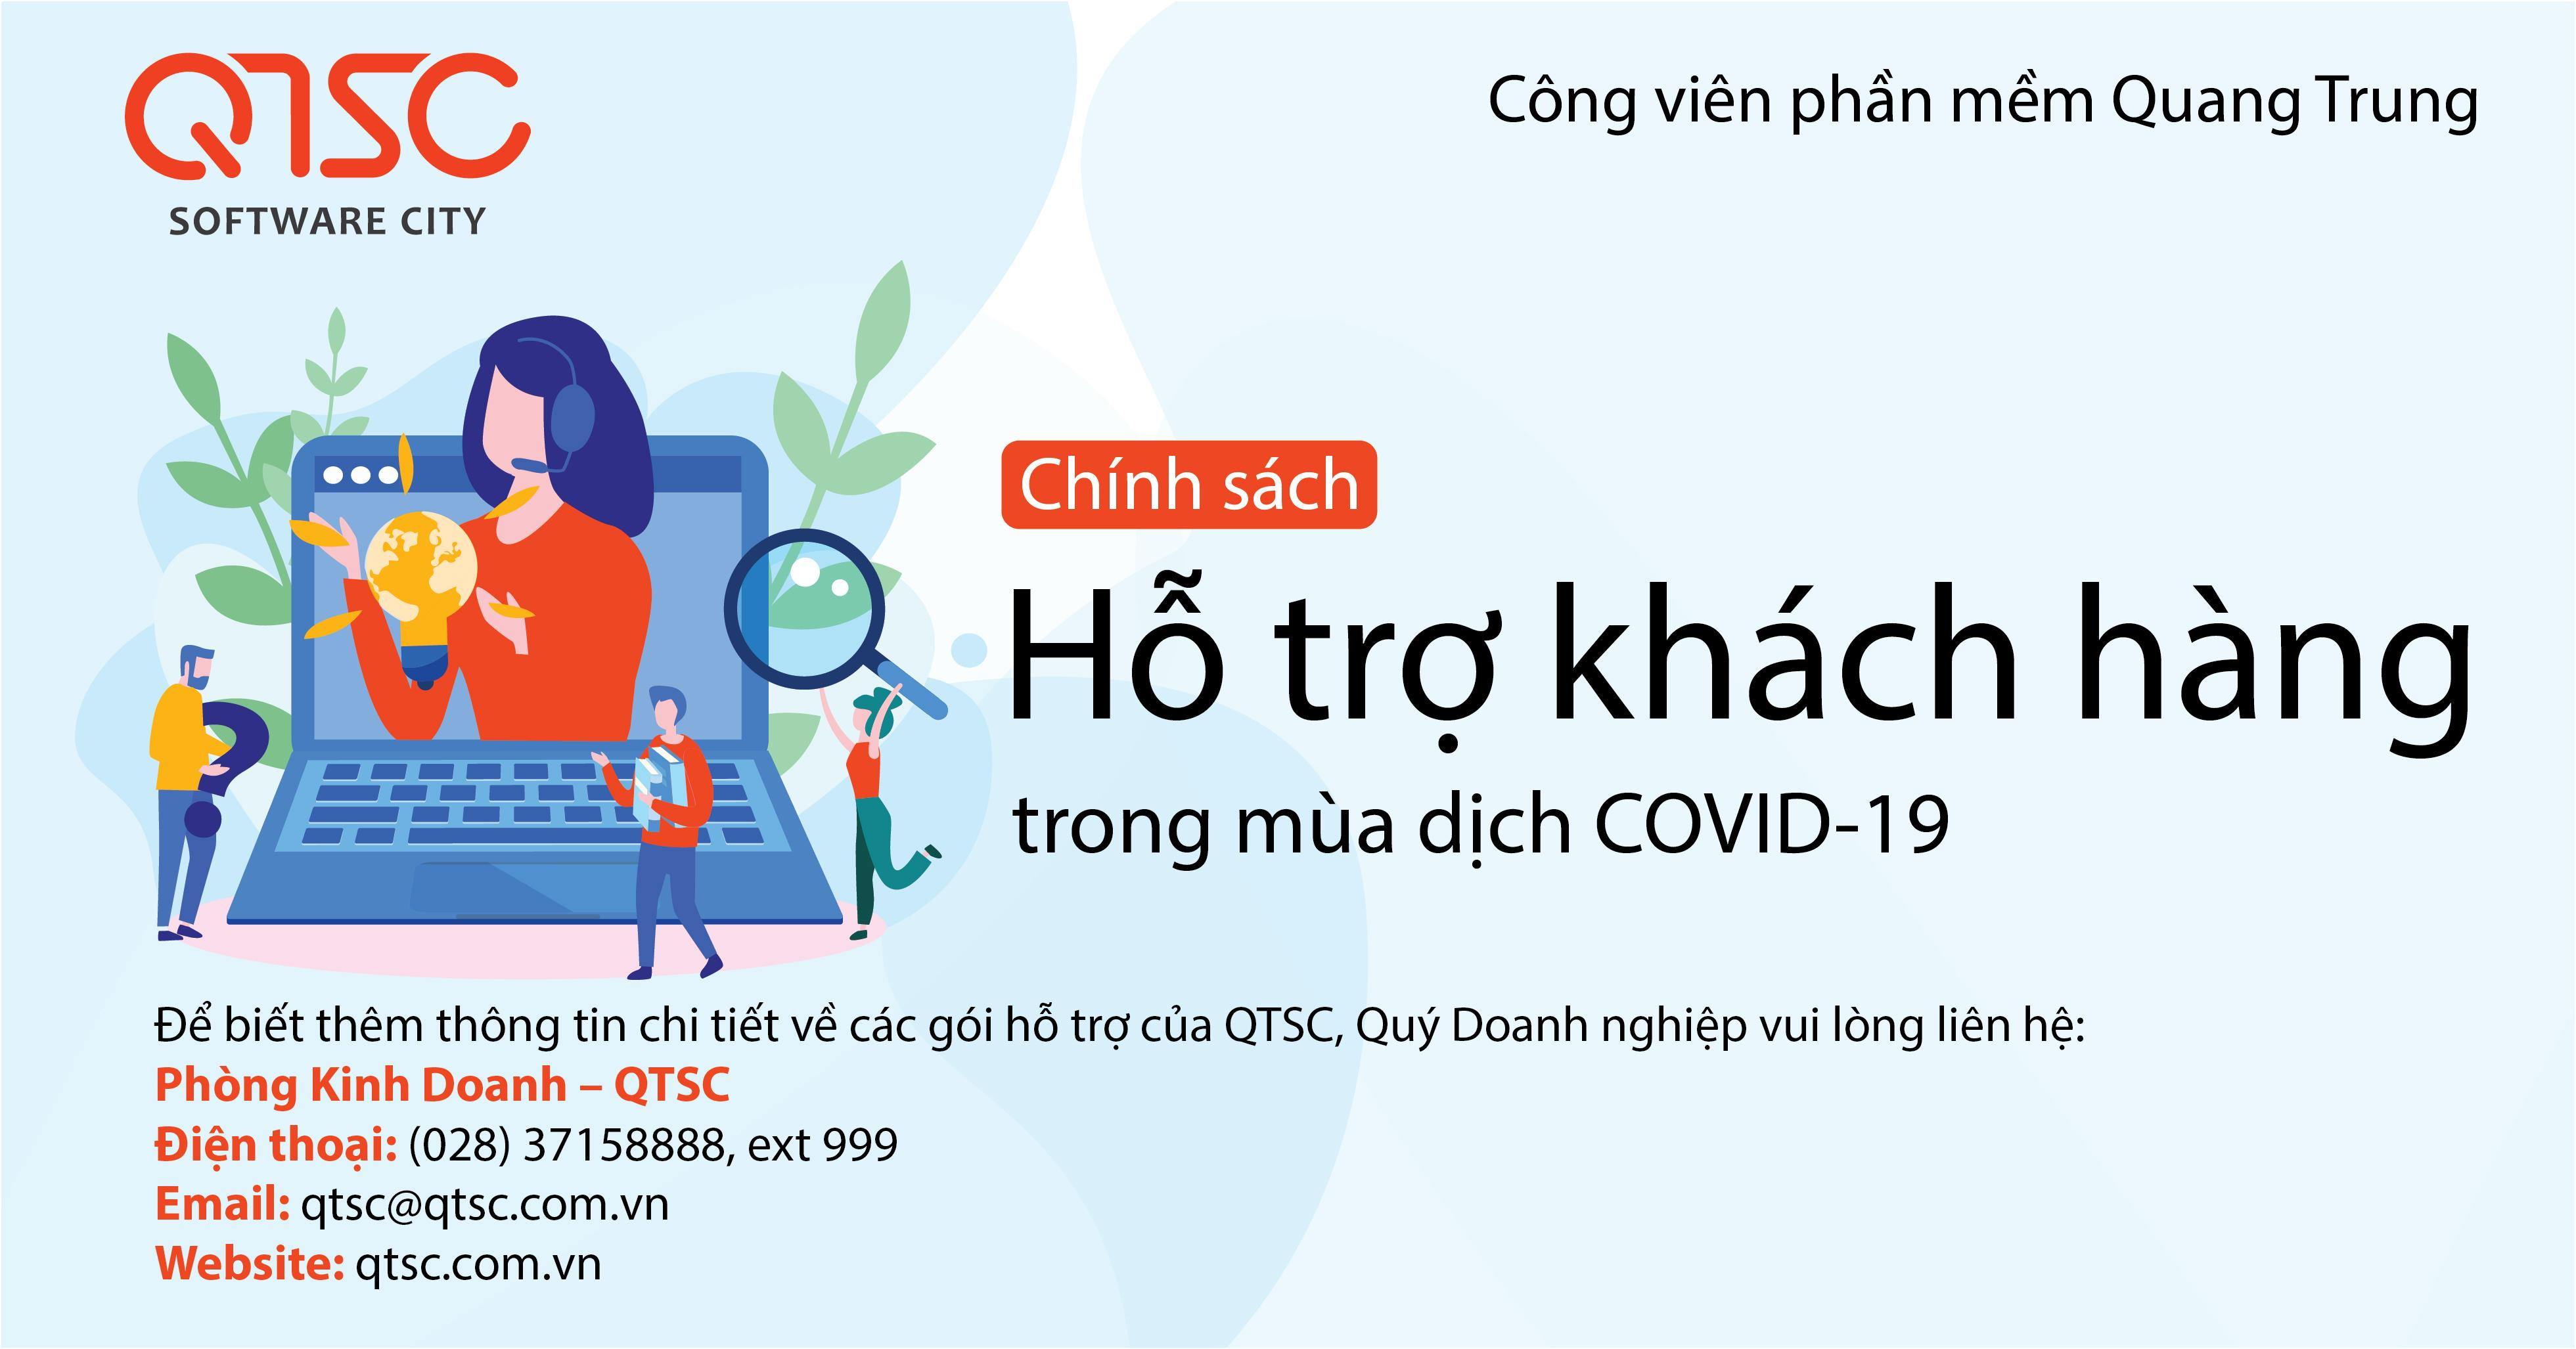 QTSC provides customer support package for COVID-19